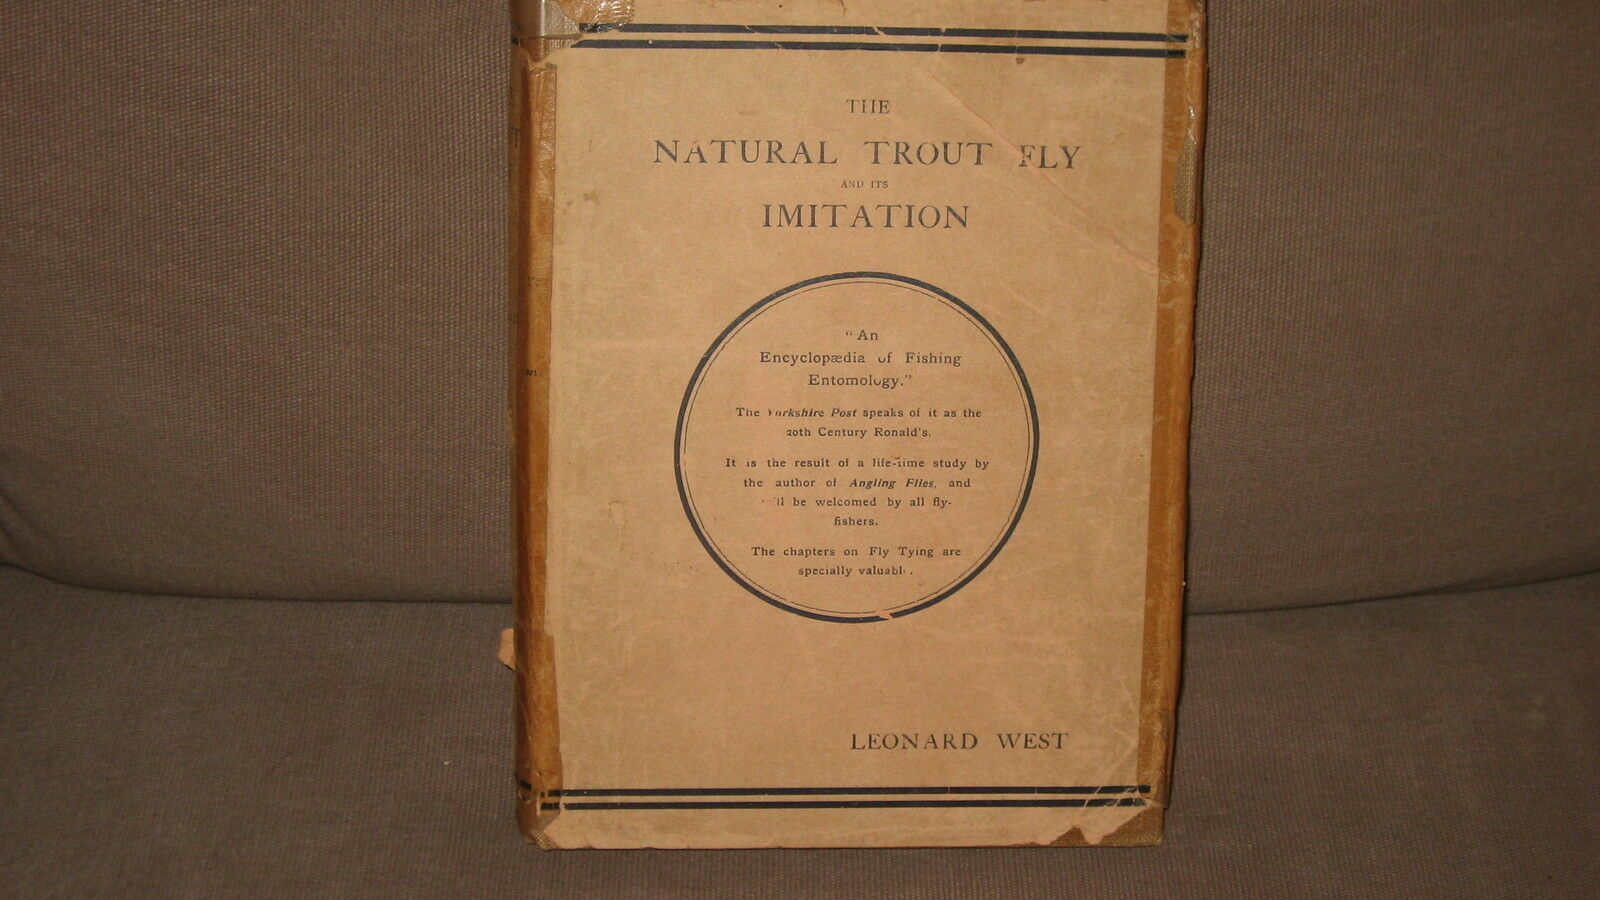 The Natural Trout Fliegen & its Imitation by Leonard West 1921 edition Very Good